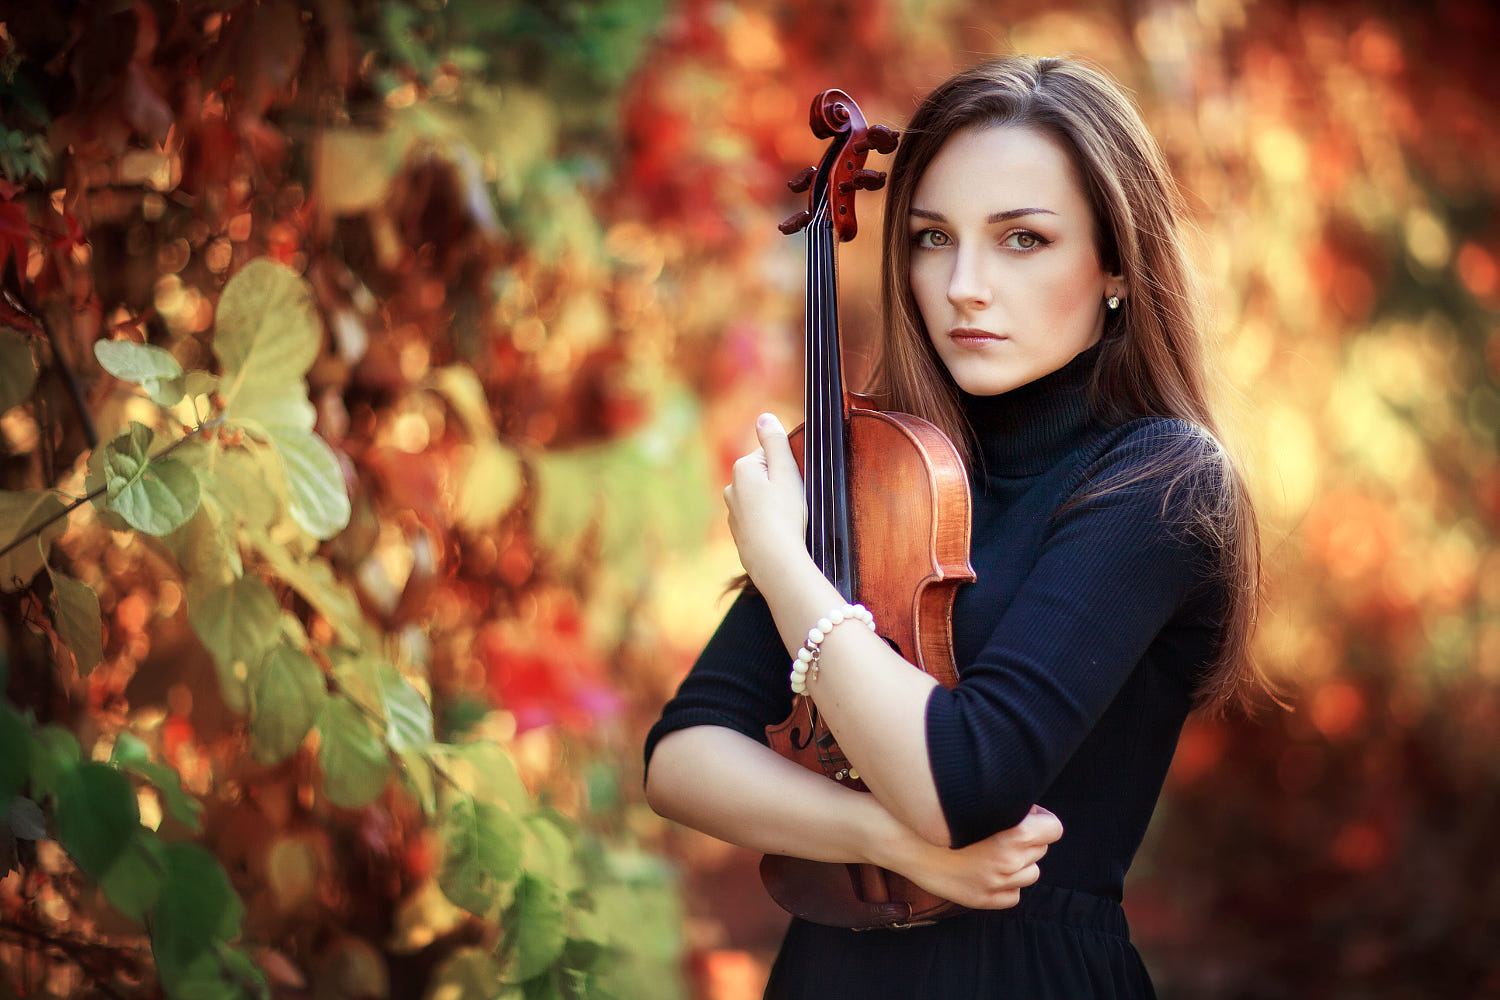 portrait photography violin